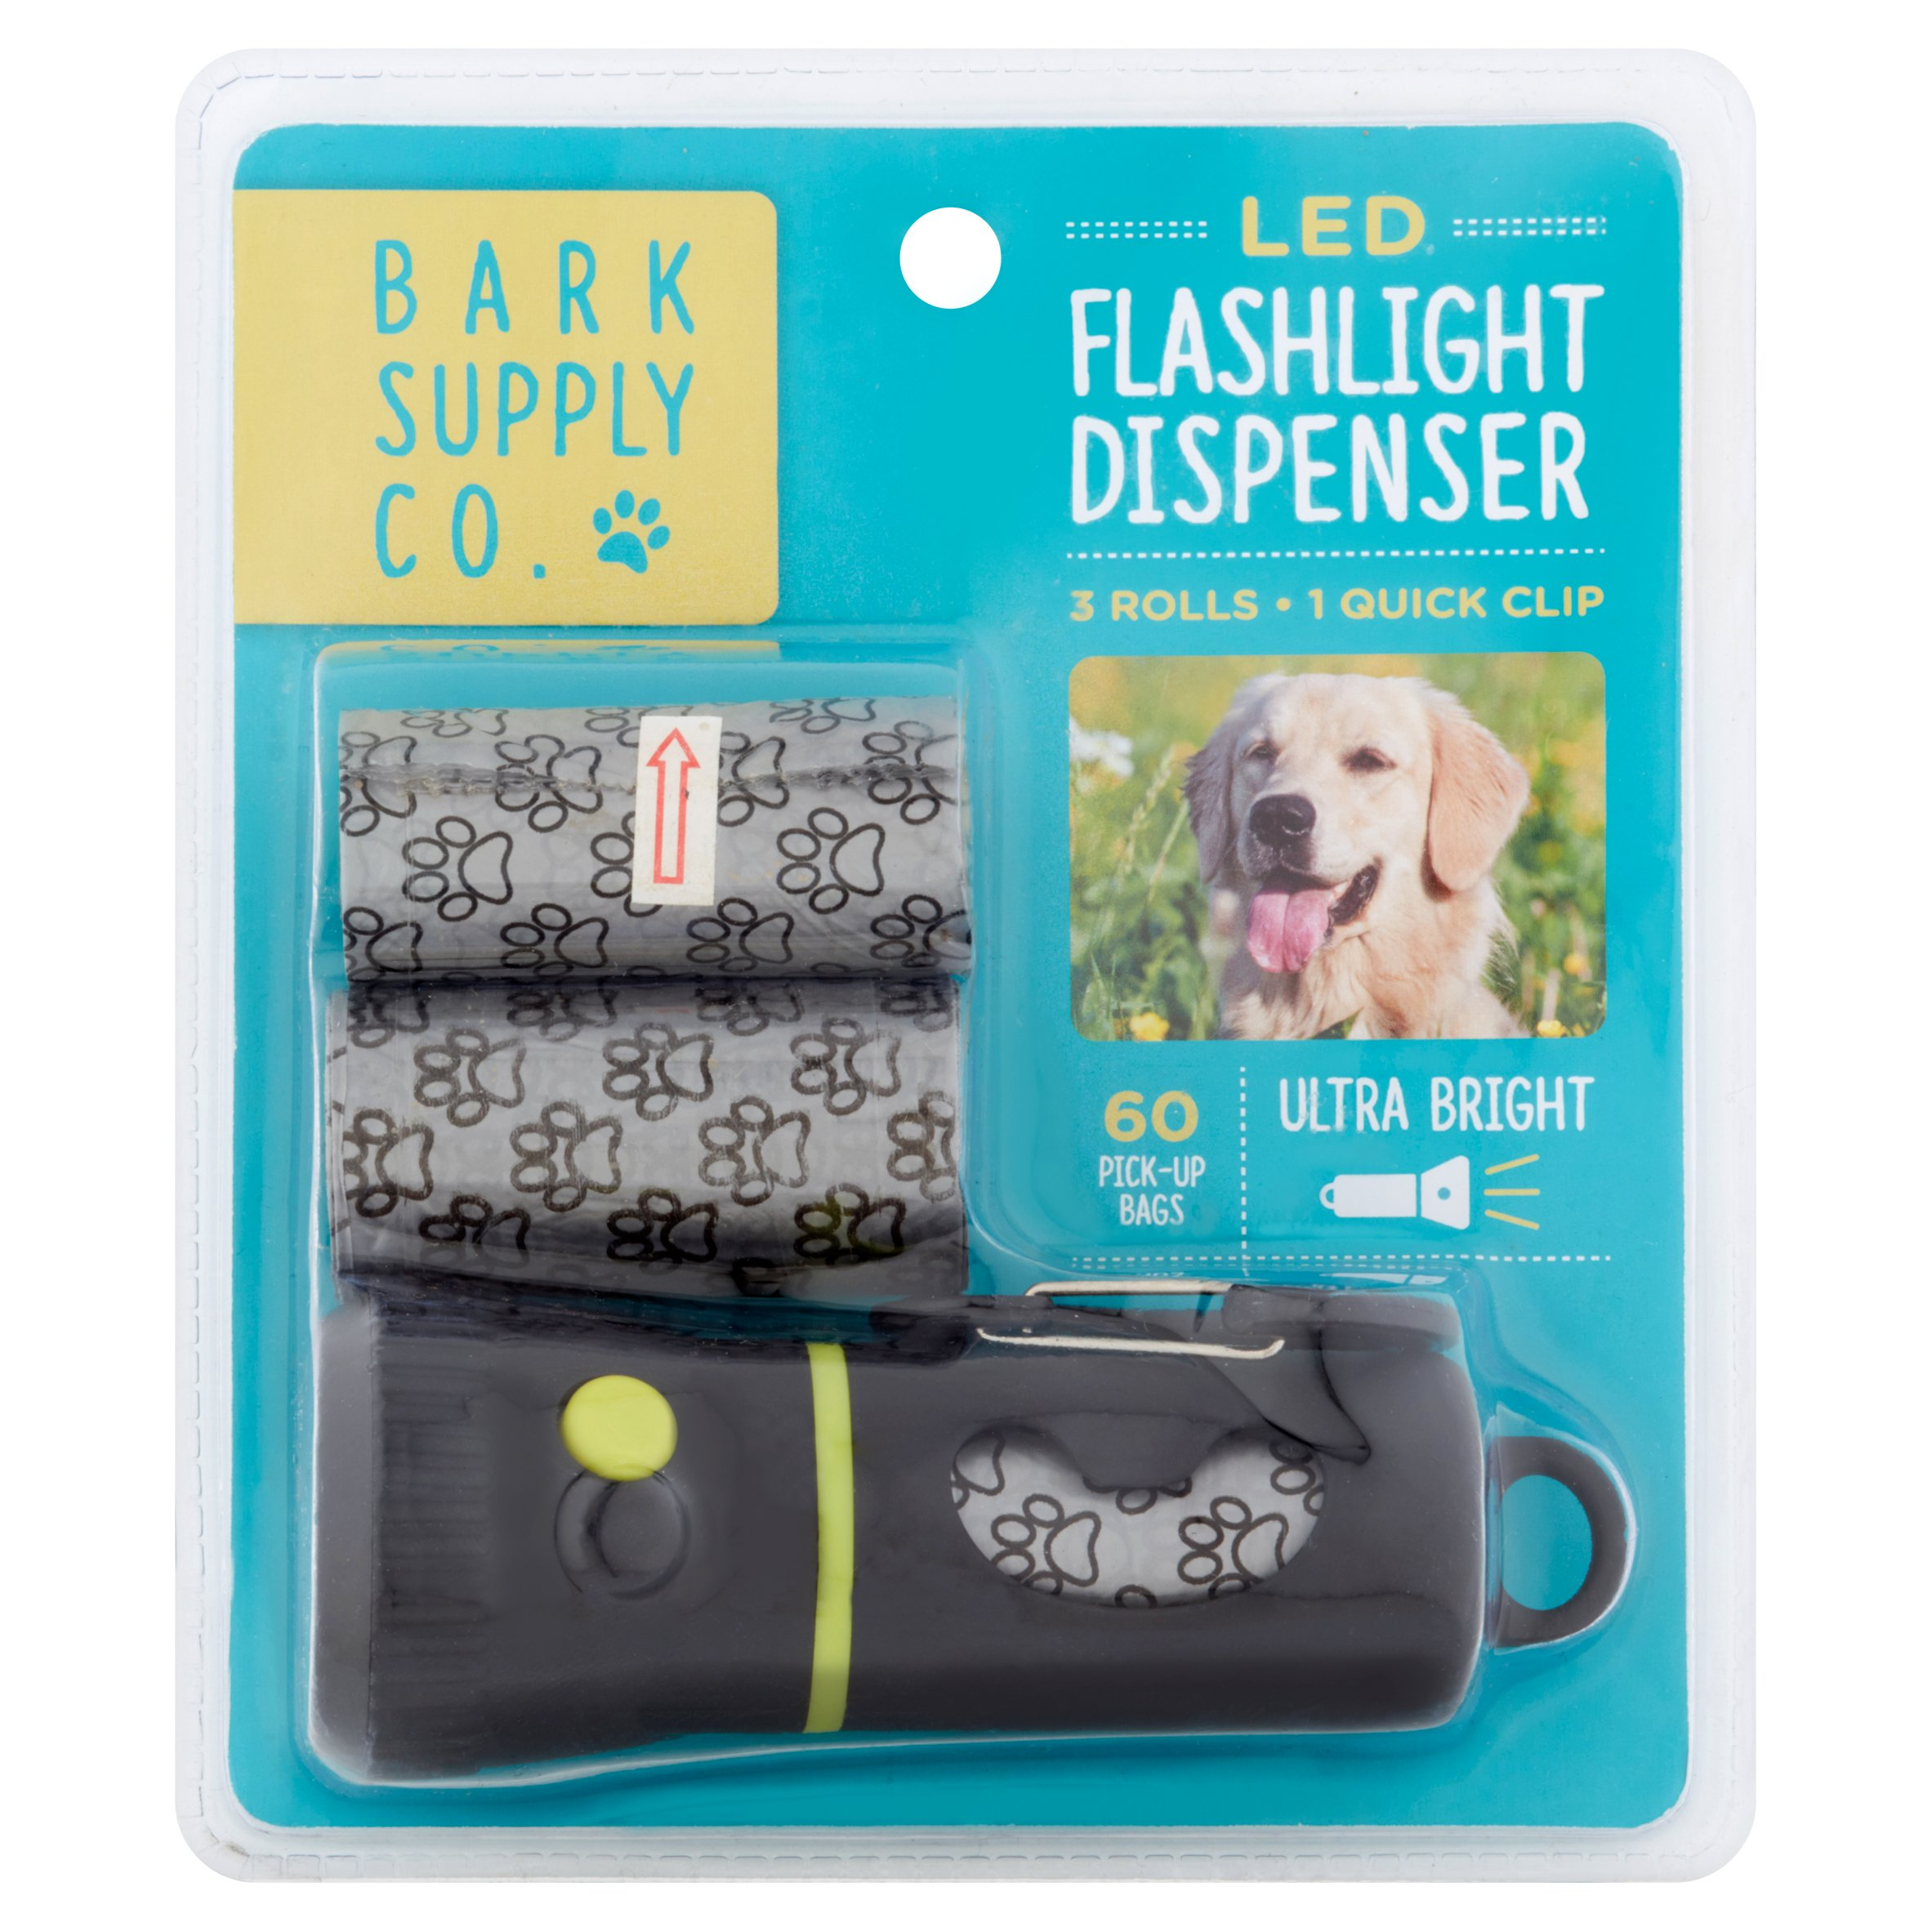 Poop Bags with LED Flashlight, 60 pick-up poop bags, Bark Supply Co. w/ 2 Refill Poop Bag